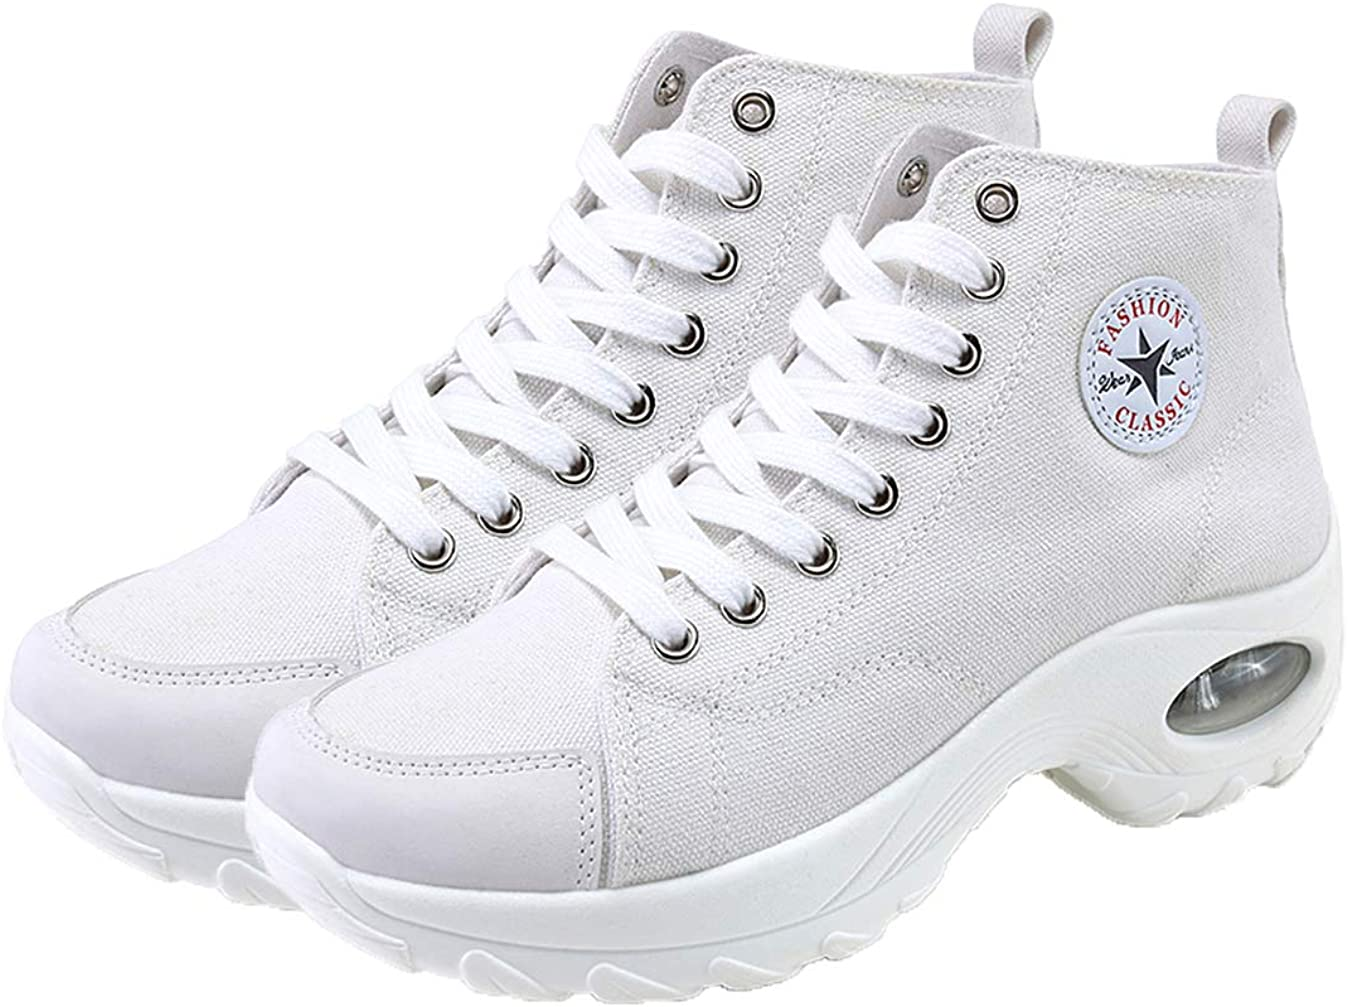 MAUGELY Women's Spring new work High Top Heightened Sole Fashion Sports Max 40% OFF S Causal